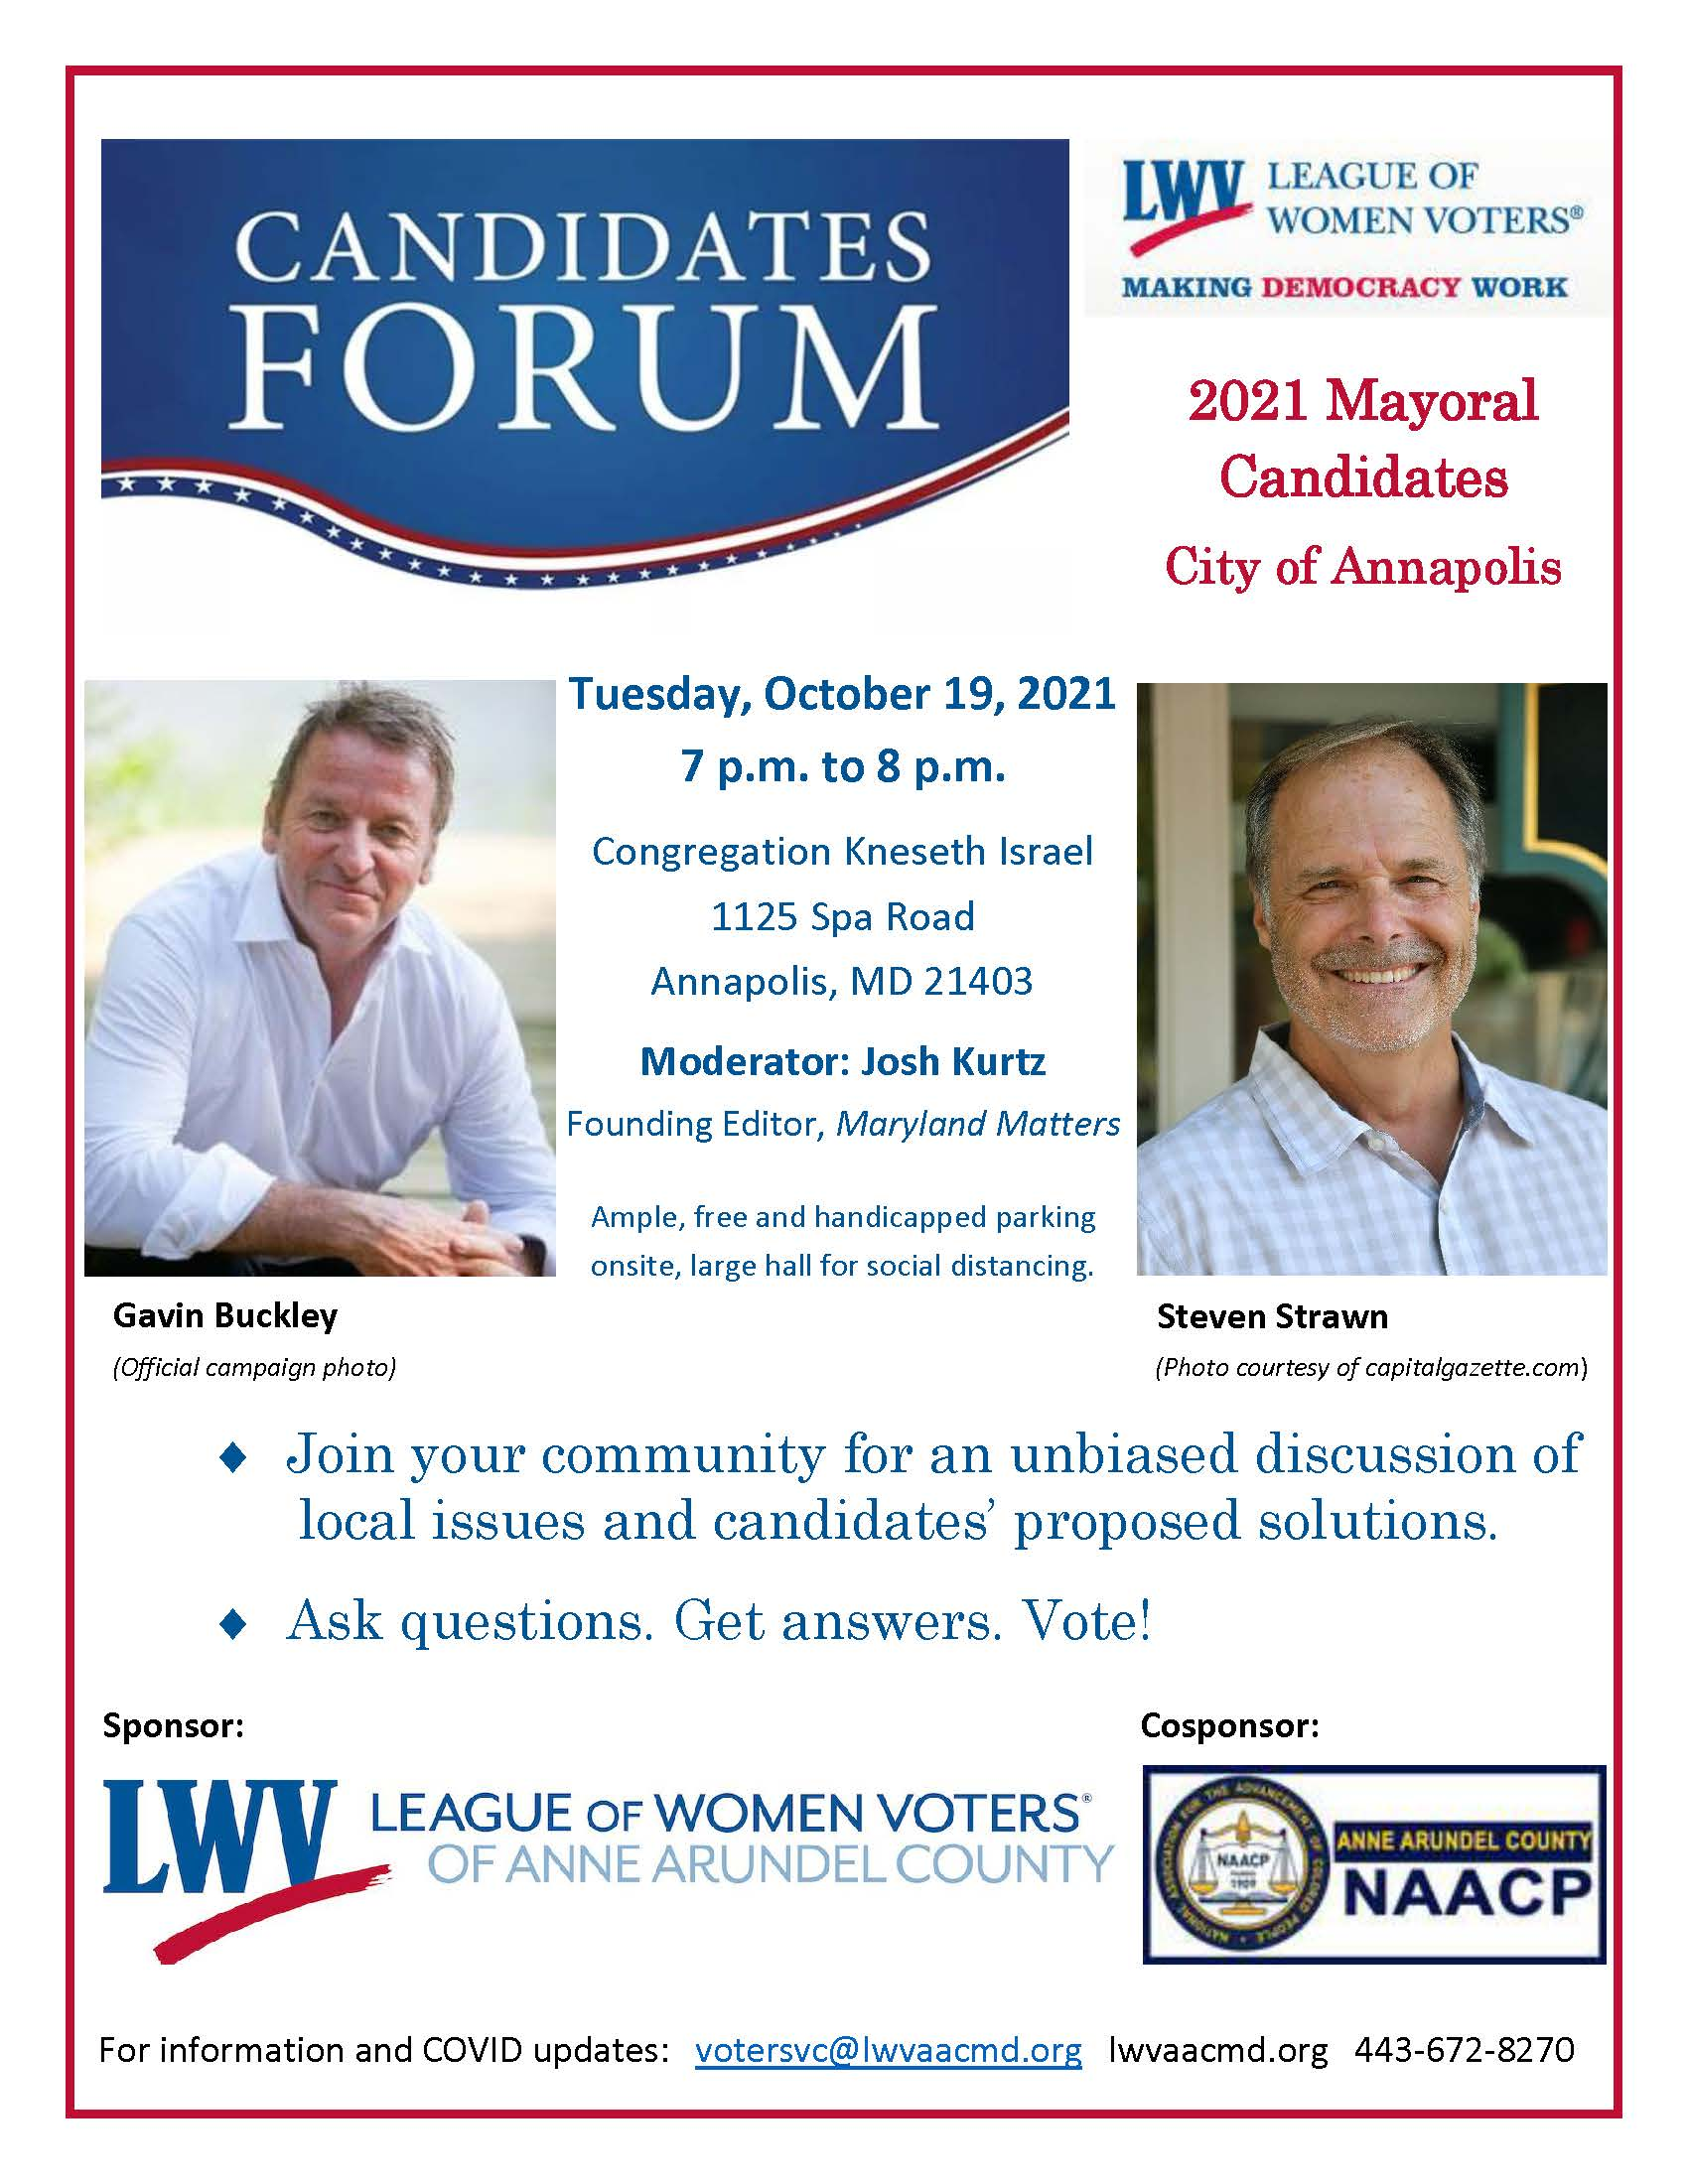 flyer for LWVAAC sponsored candidate forum with photos of Annapolis mayoral candidates Gavin Buckley and Steven Strawn to be held 10/19/21 at Kneseth Israael